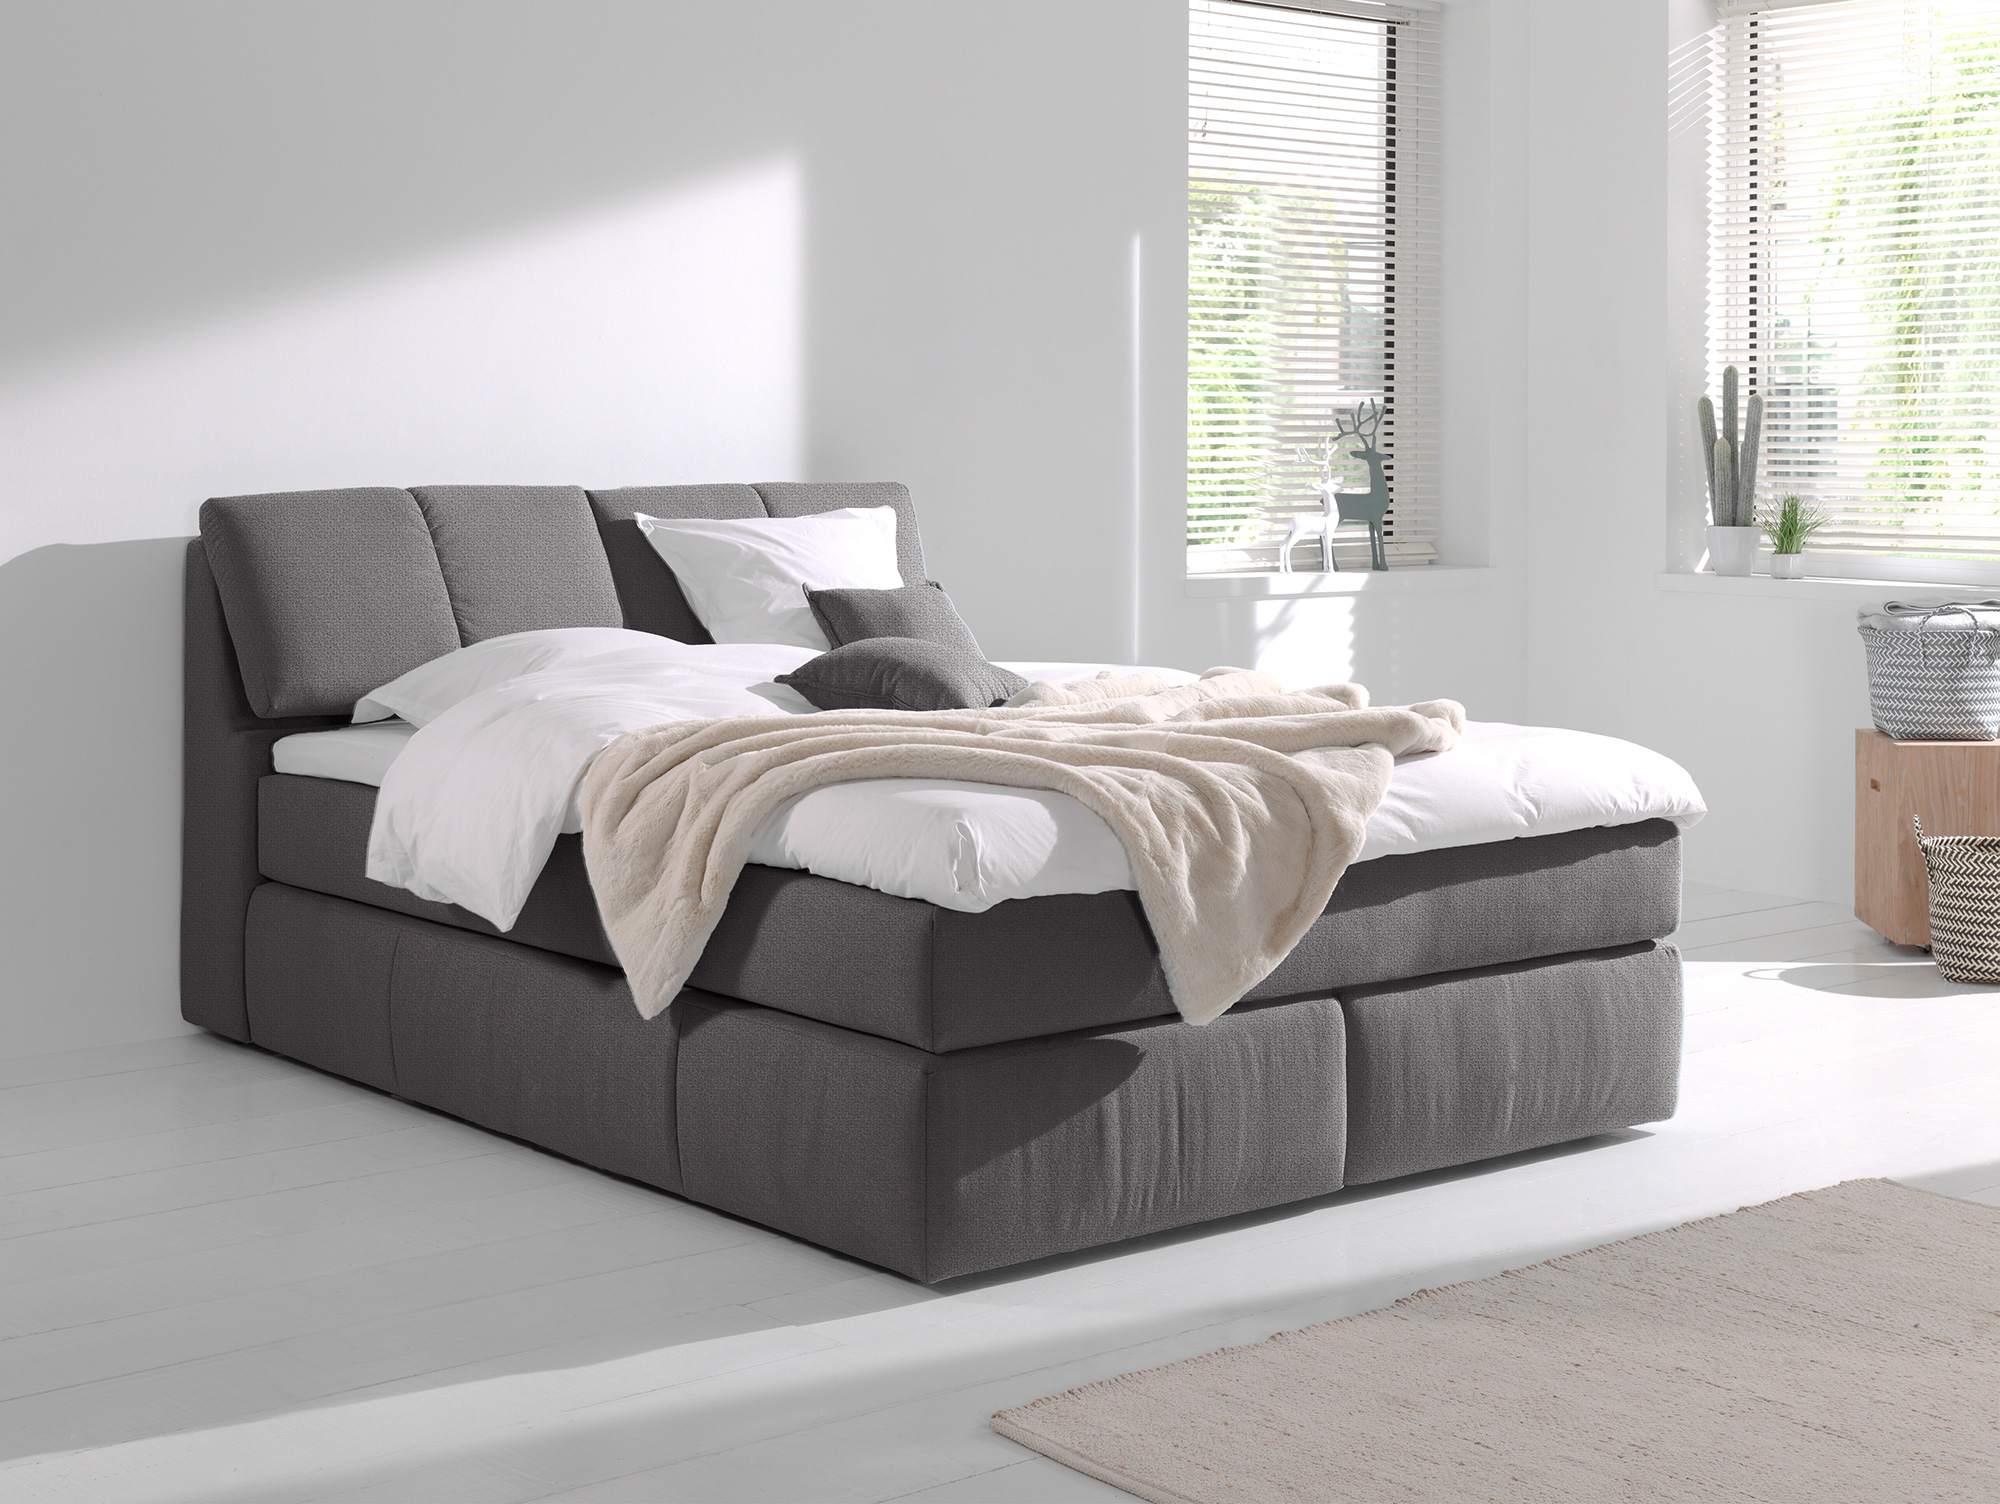 roswell boxspringbett mit relaxkopfteil 180 x 200 cm grau h rtegrad 2. Black Bedroom Furniture Sets. Home Design Ideas